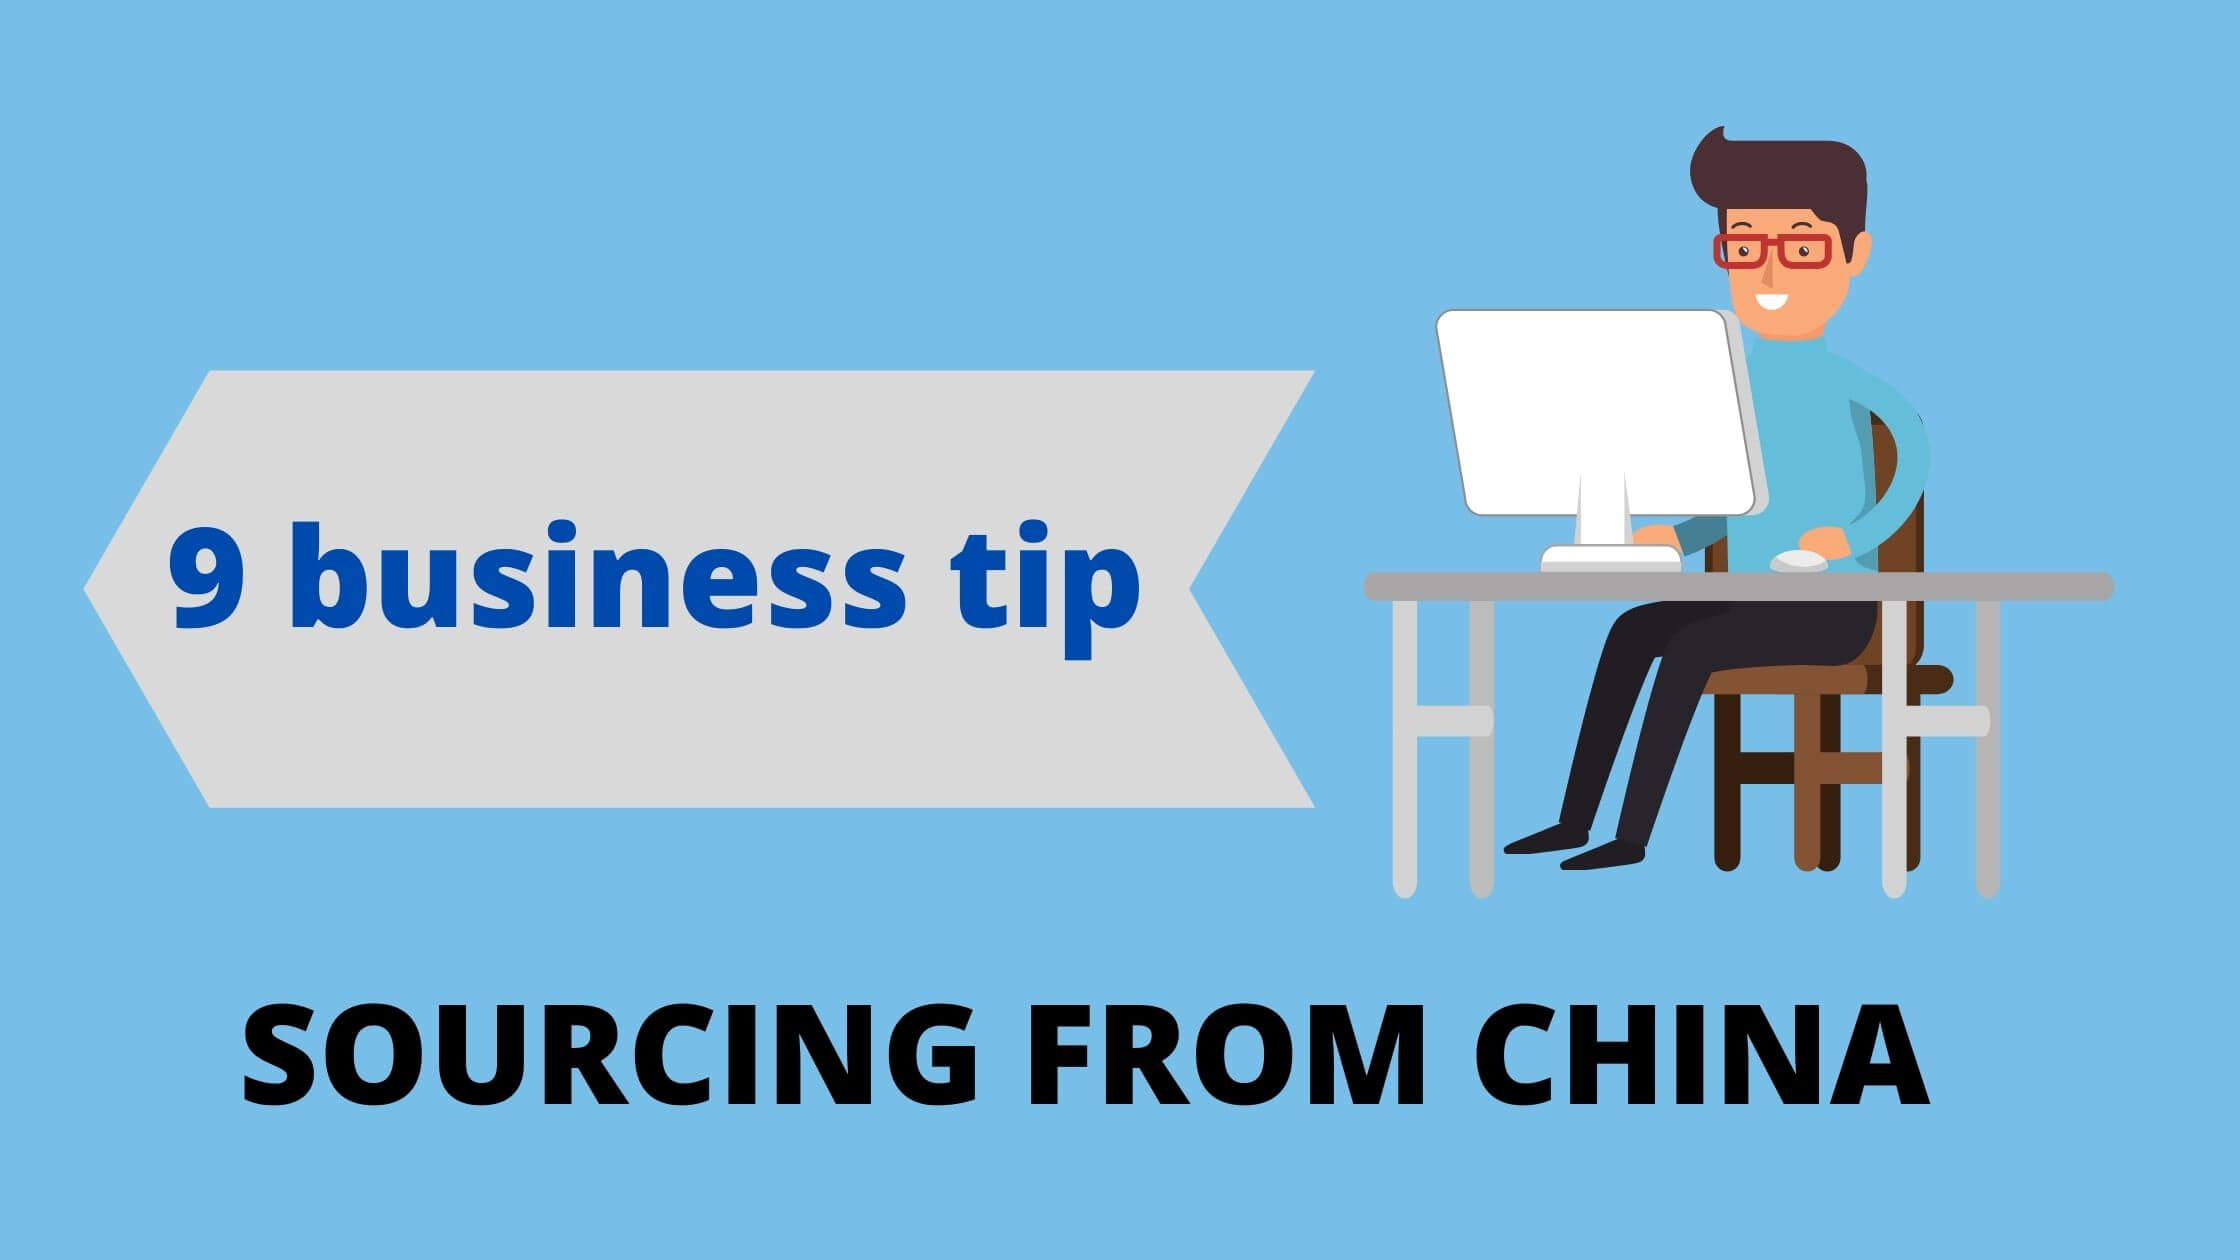 9 business tip SOURCING FROM CHINA